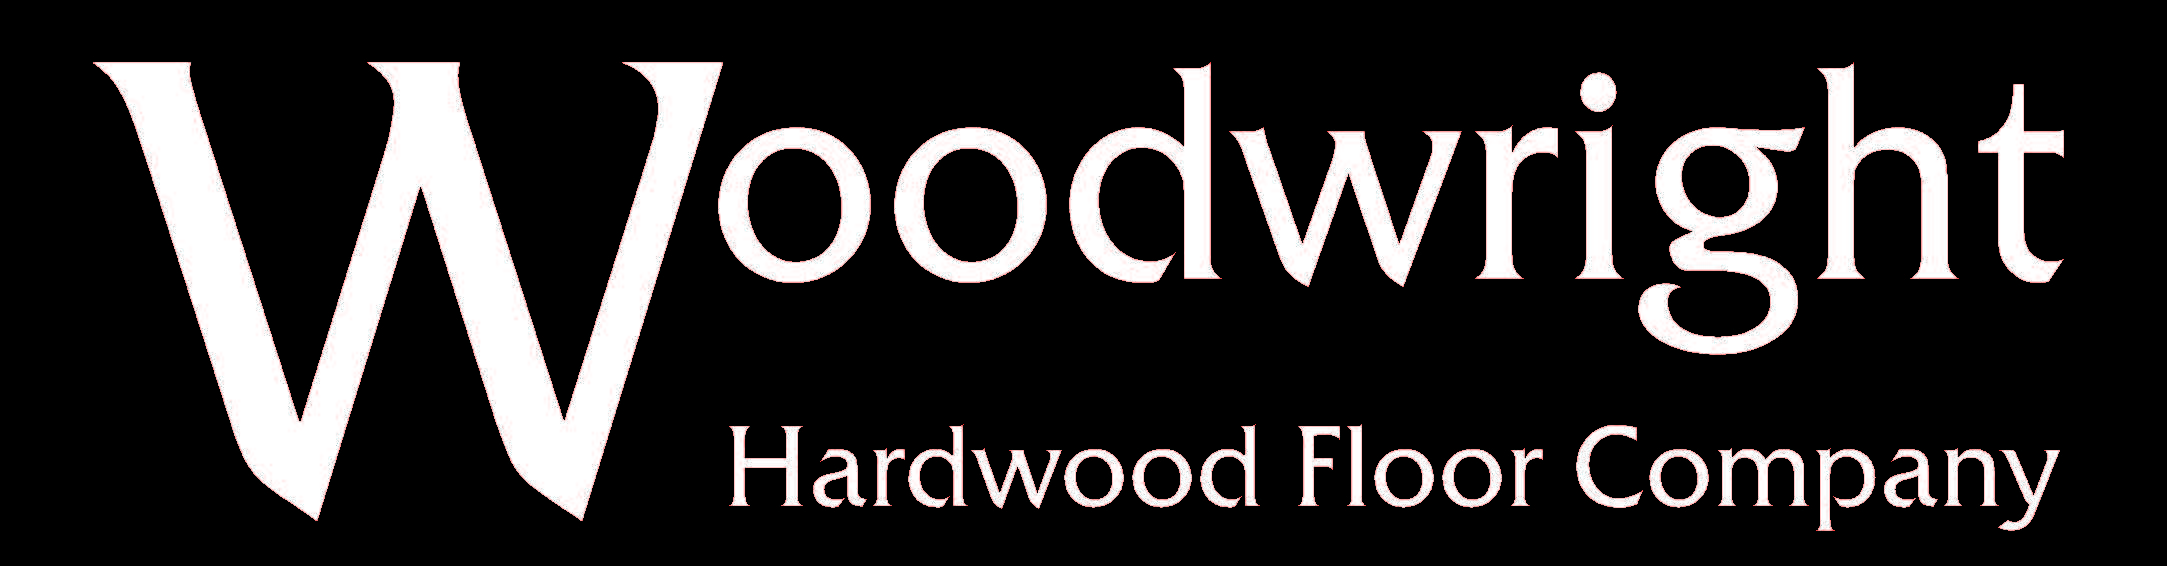 COTE - Woodwright logo